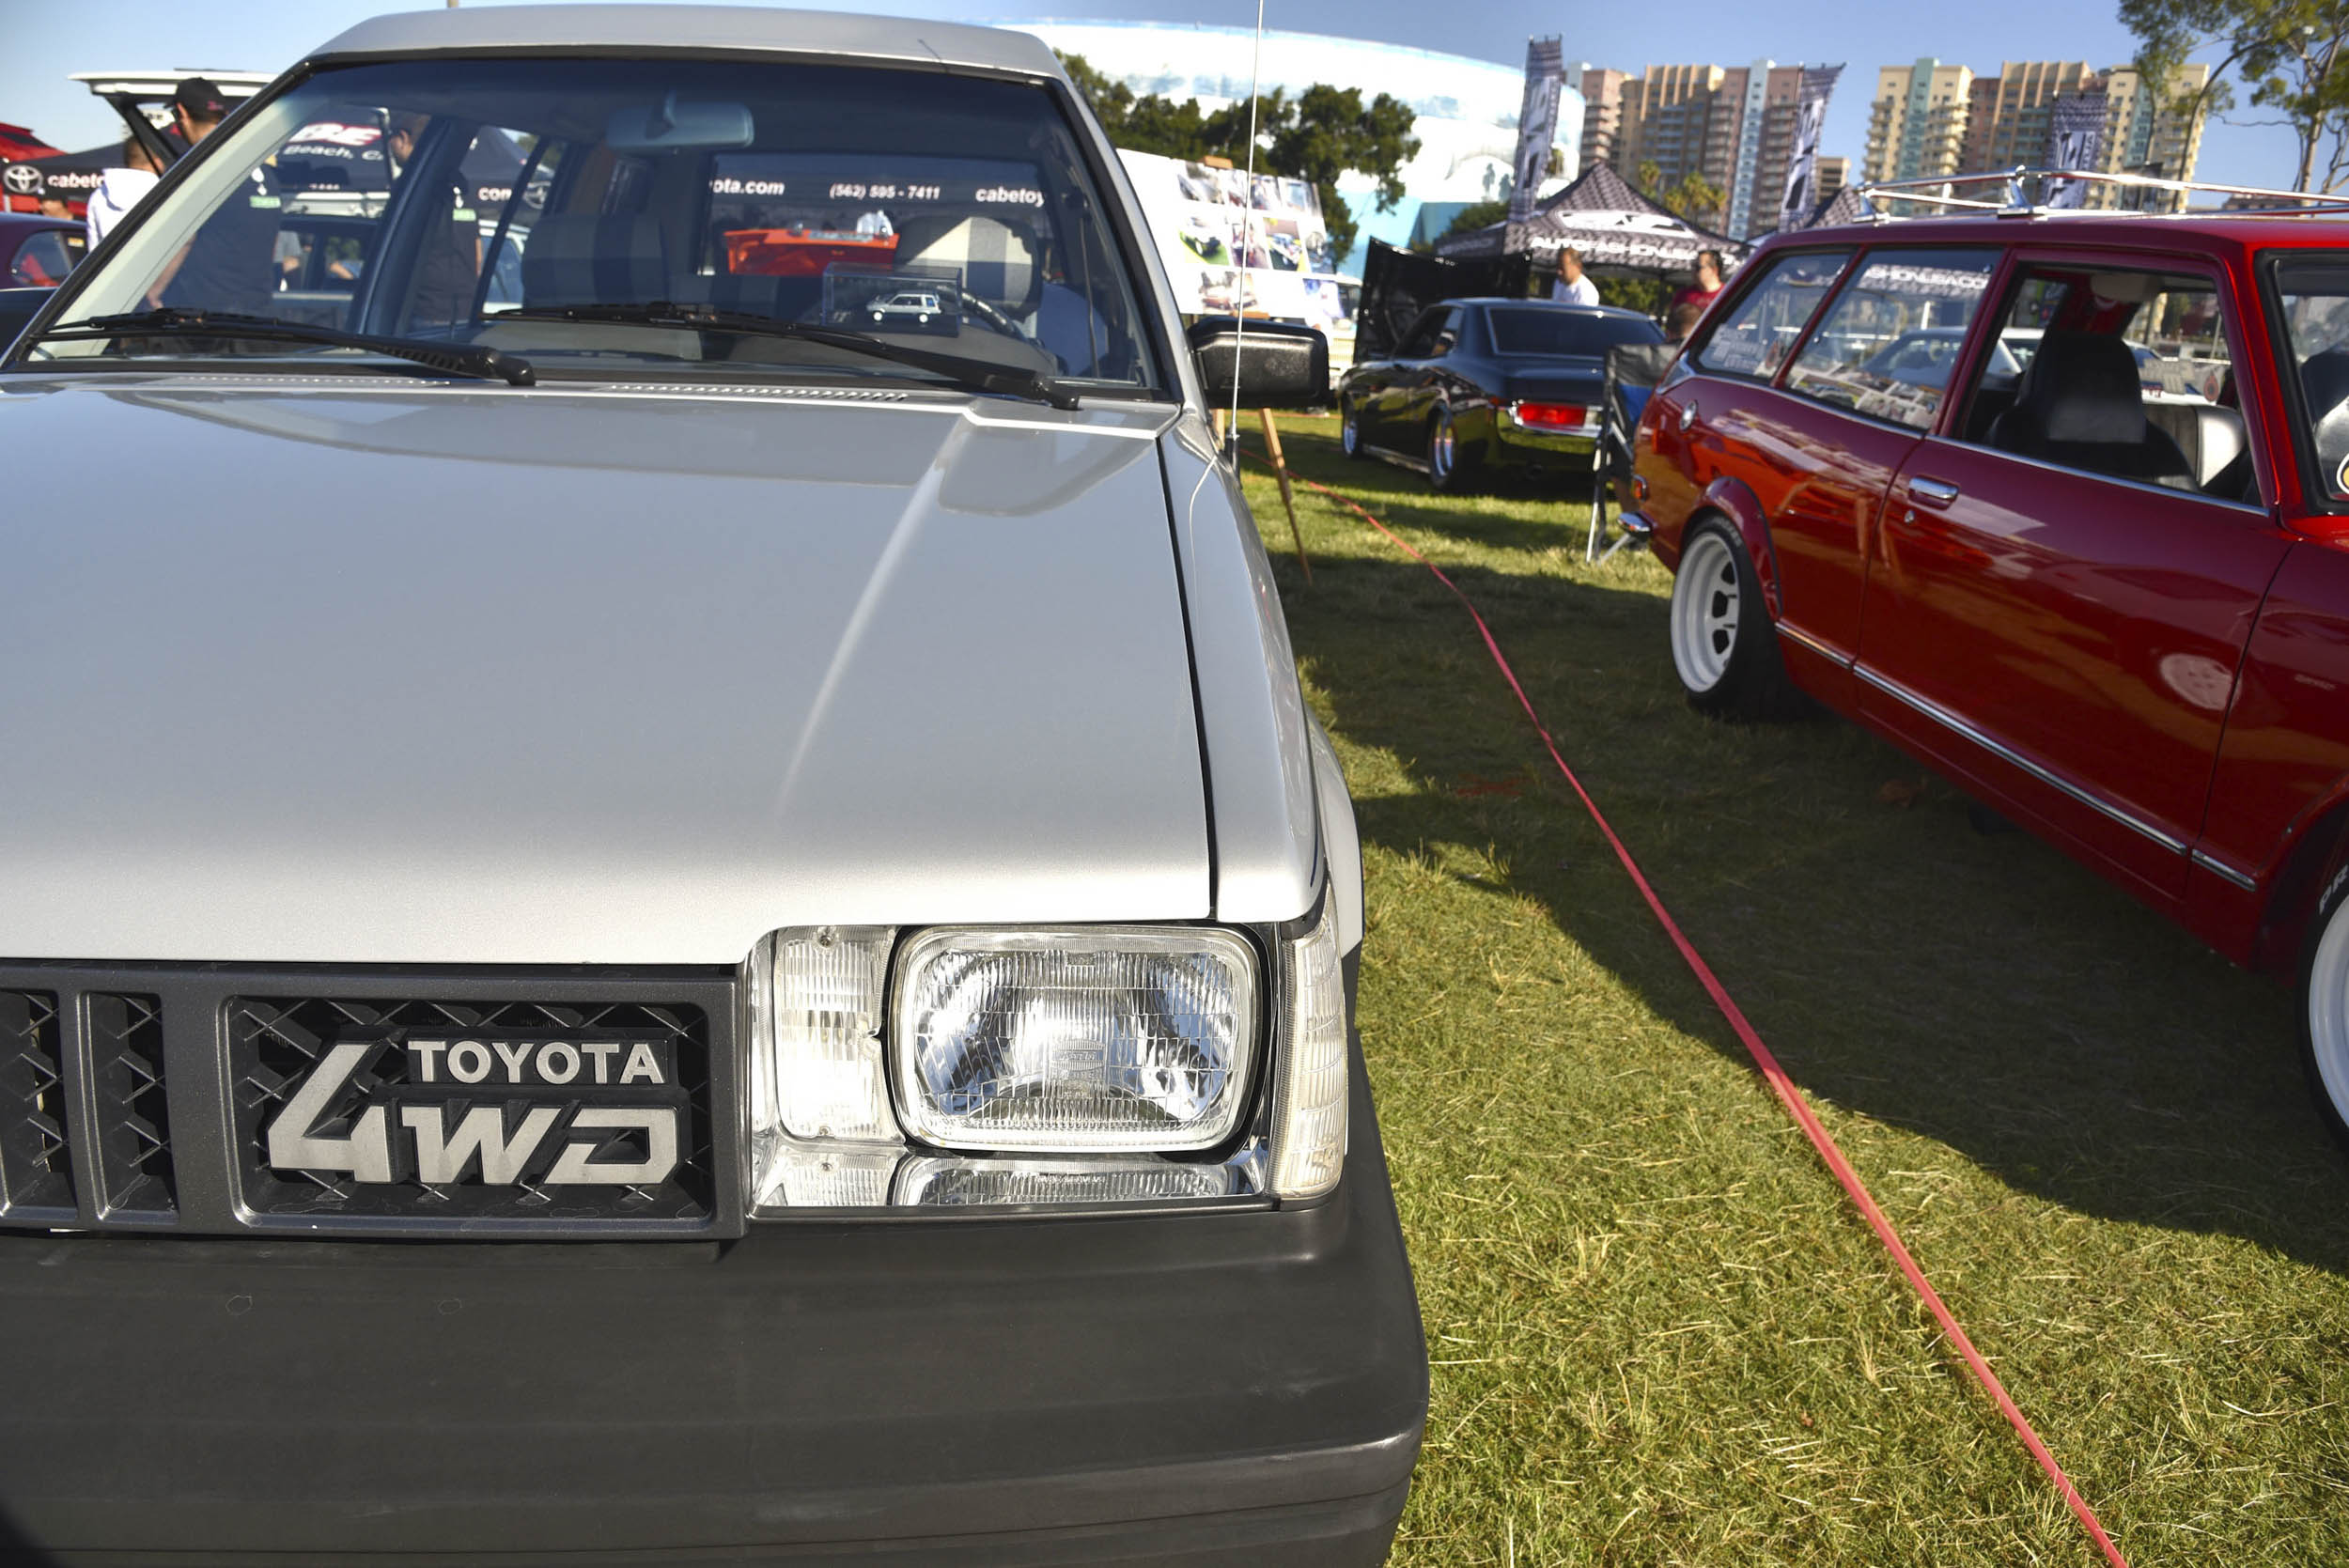 Toyota 4WD at JCCS